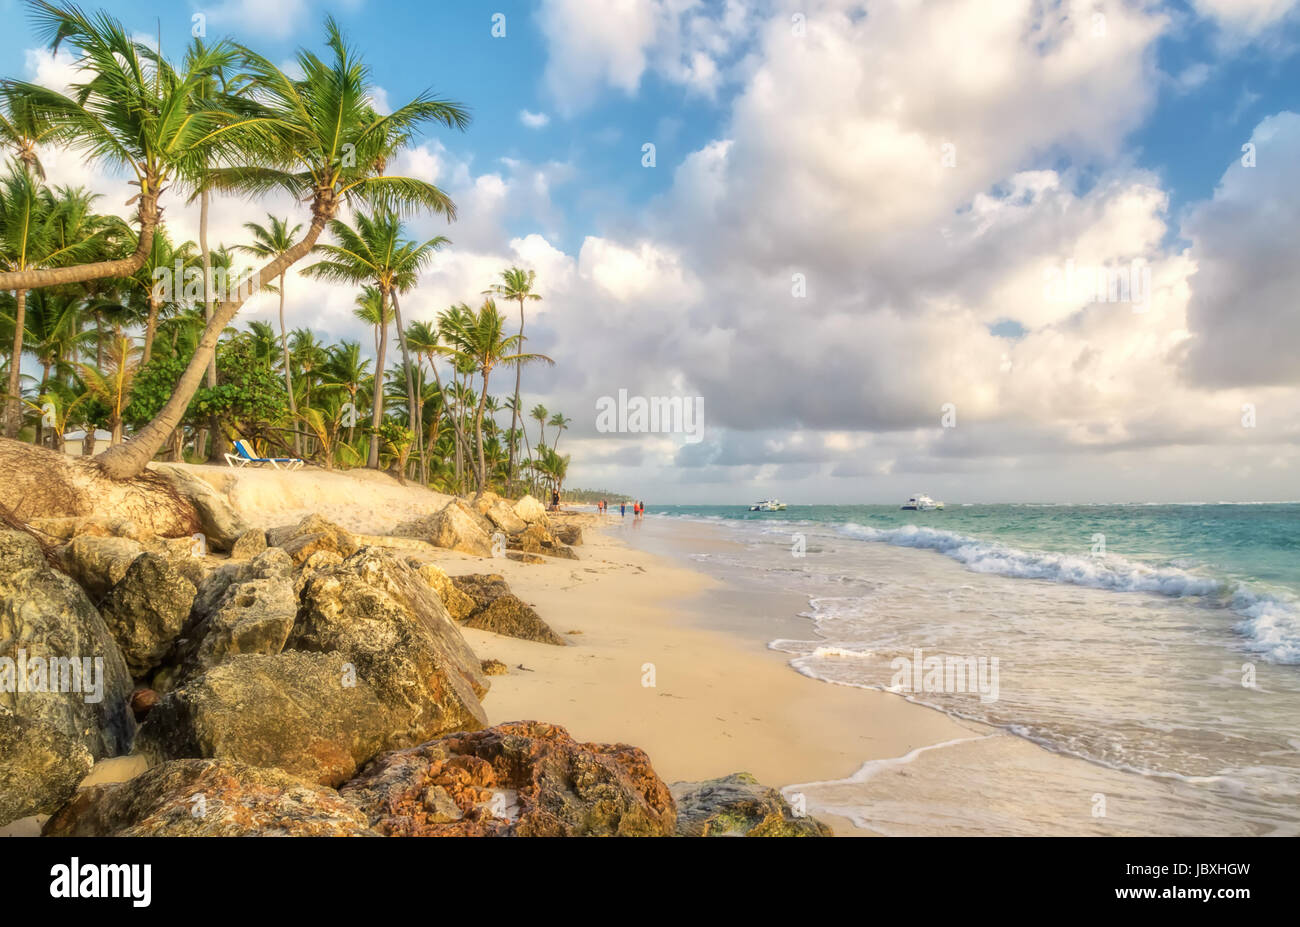 Punta Cana in the Dominican Republic. - Stock Image